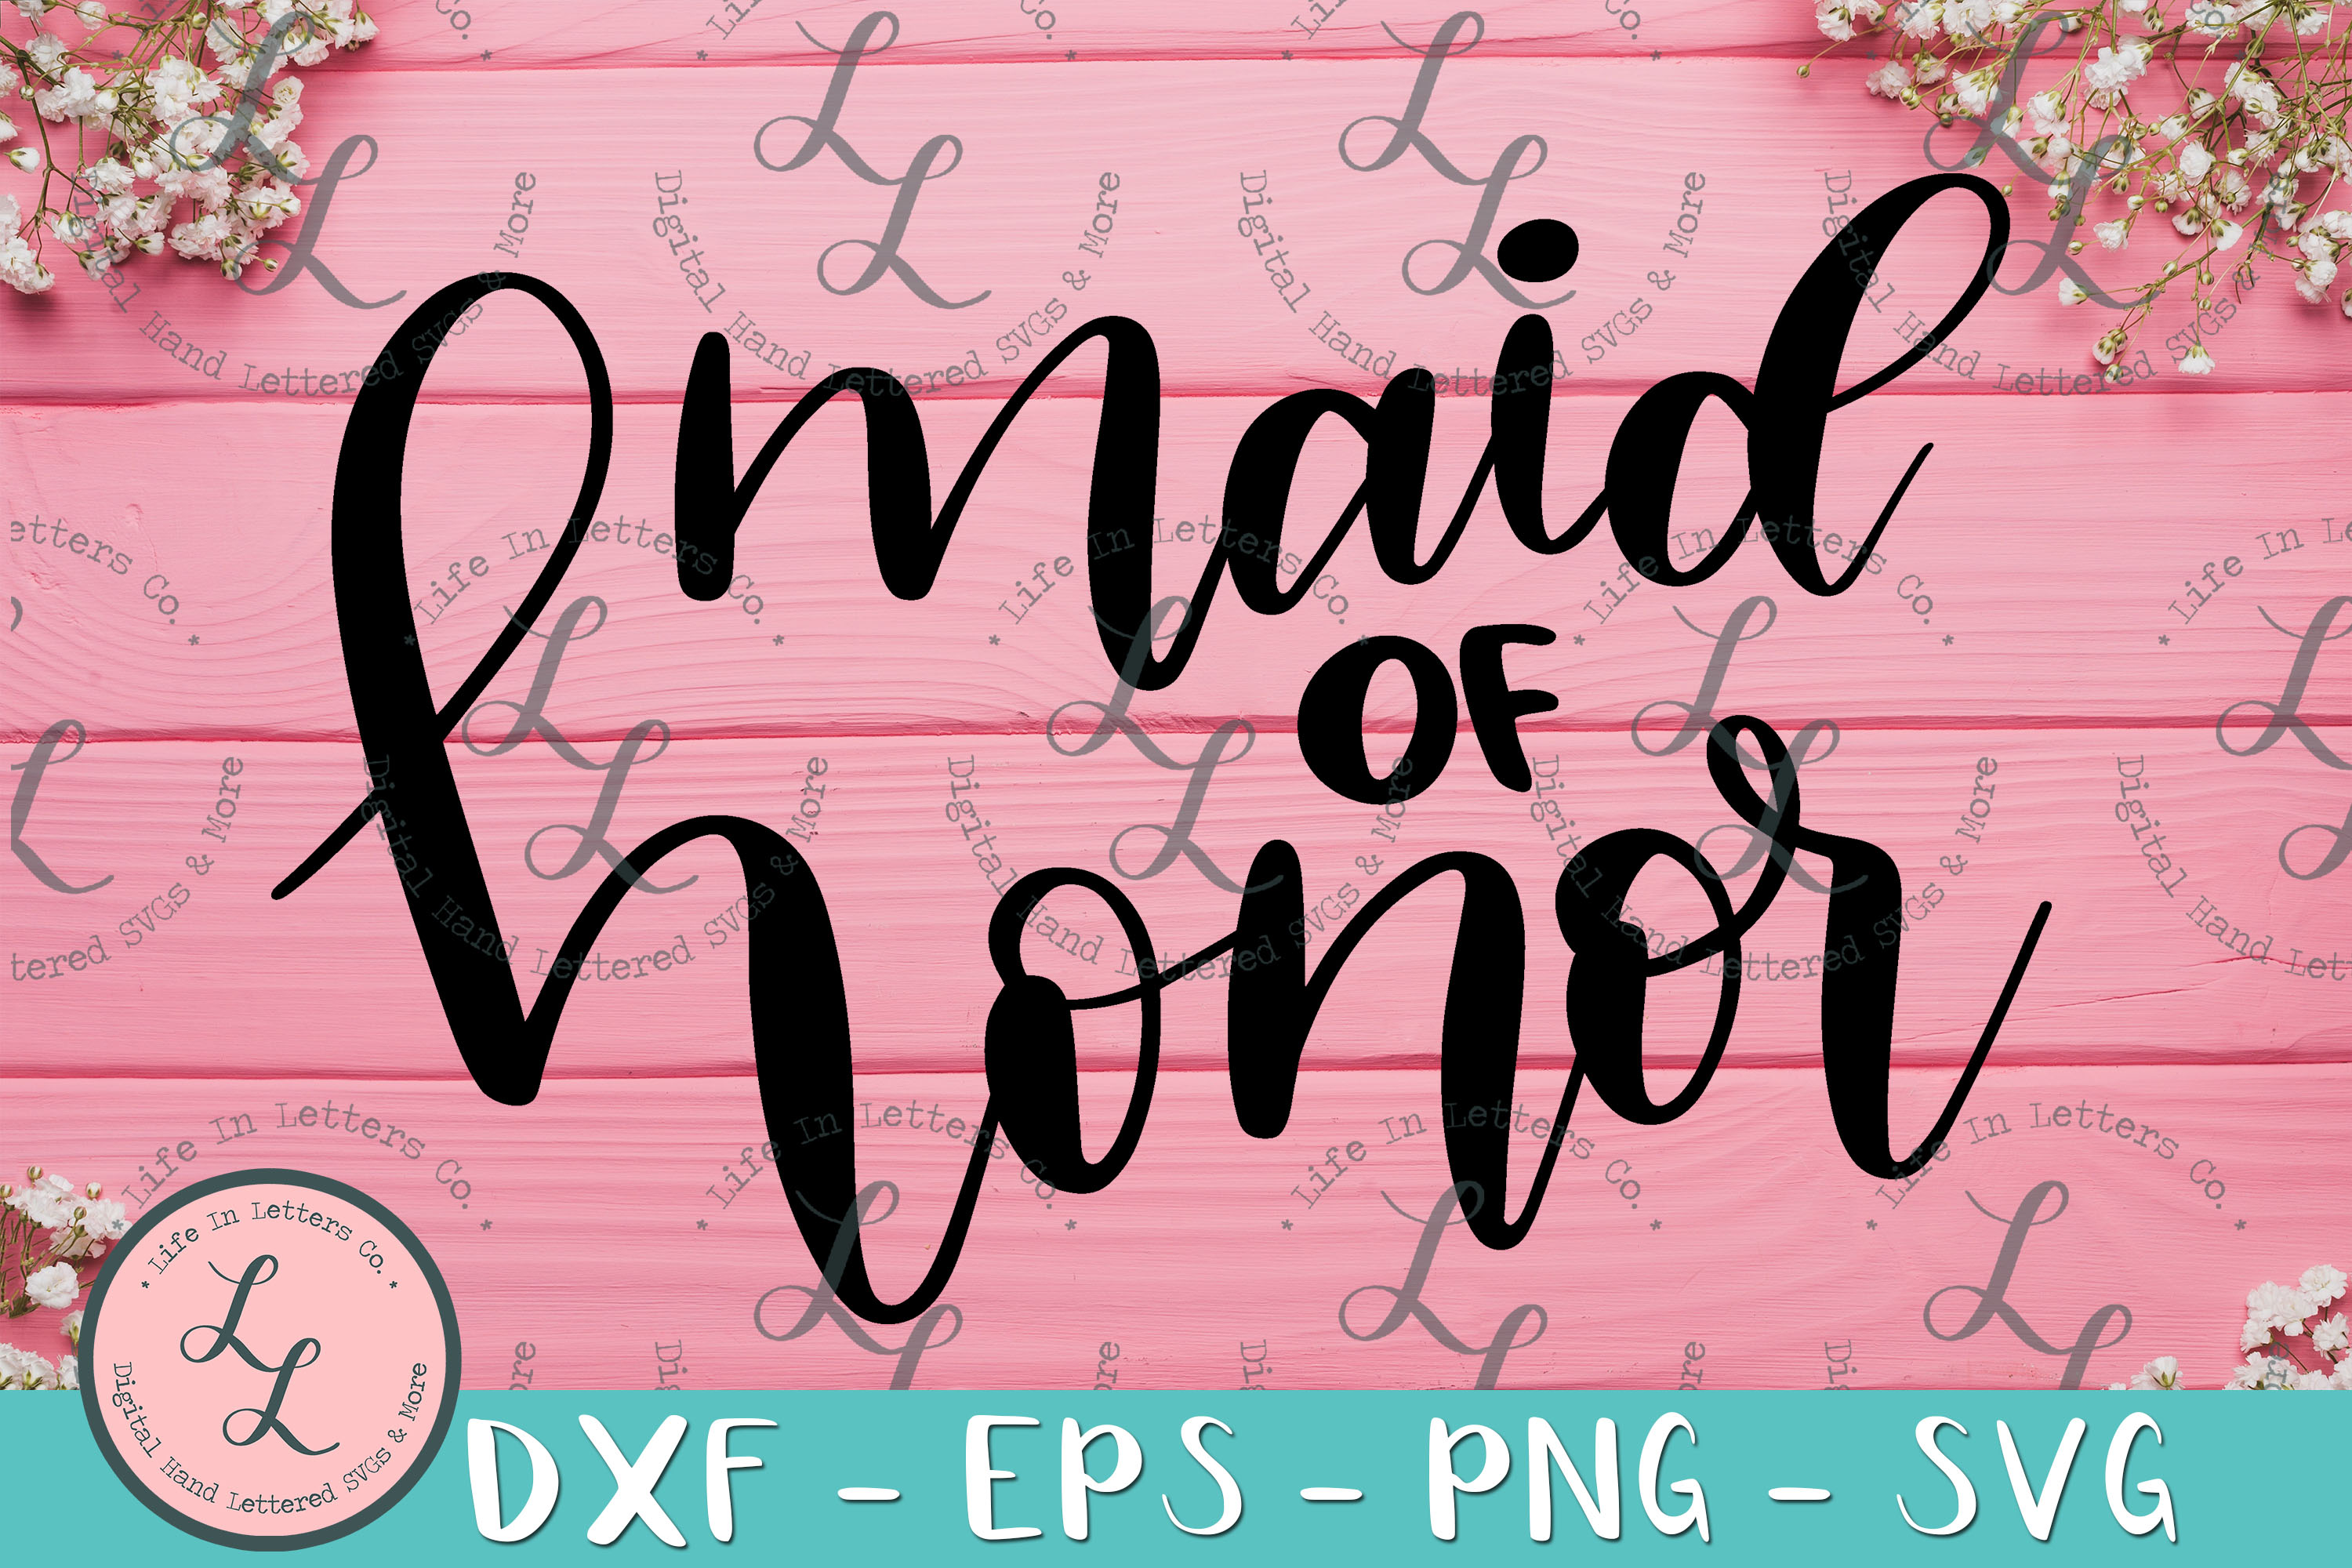 Maid Of Honor- Hand Lettered Cut File SVG PNG EPS DXF example image 1